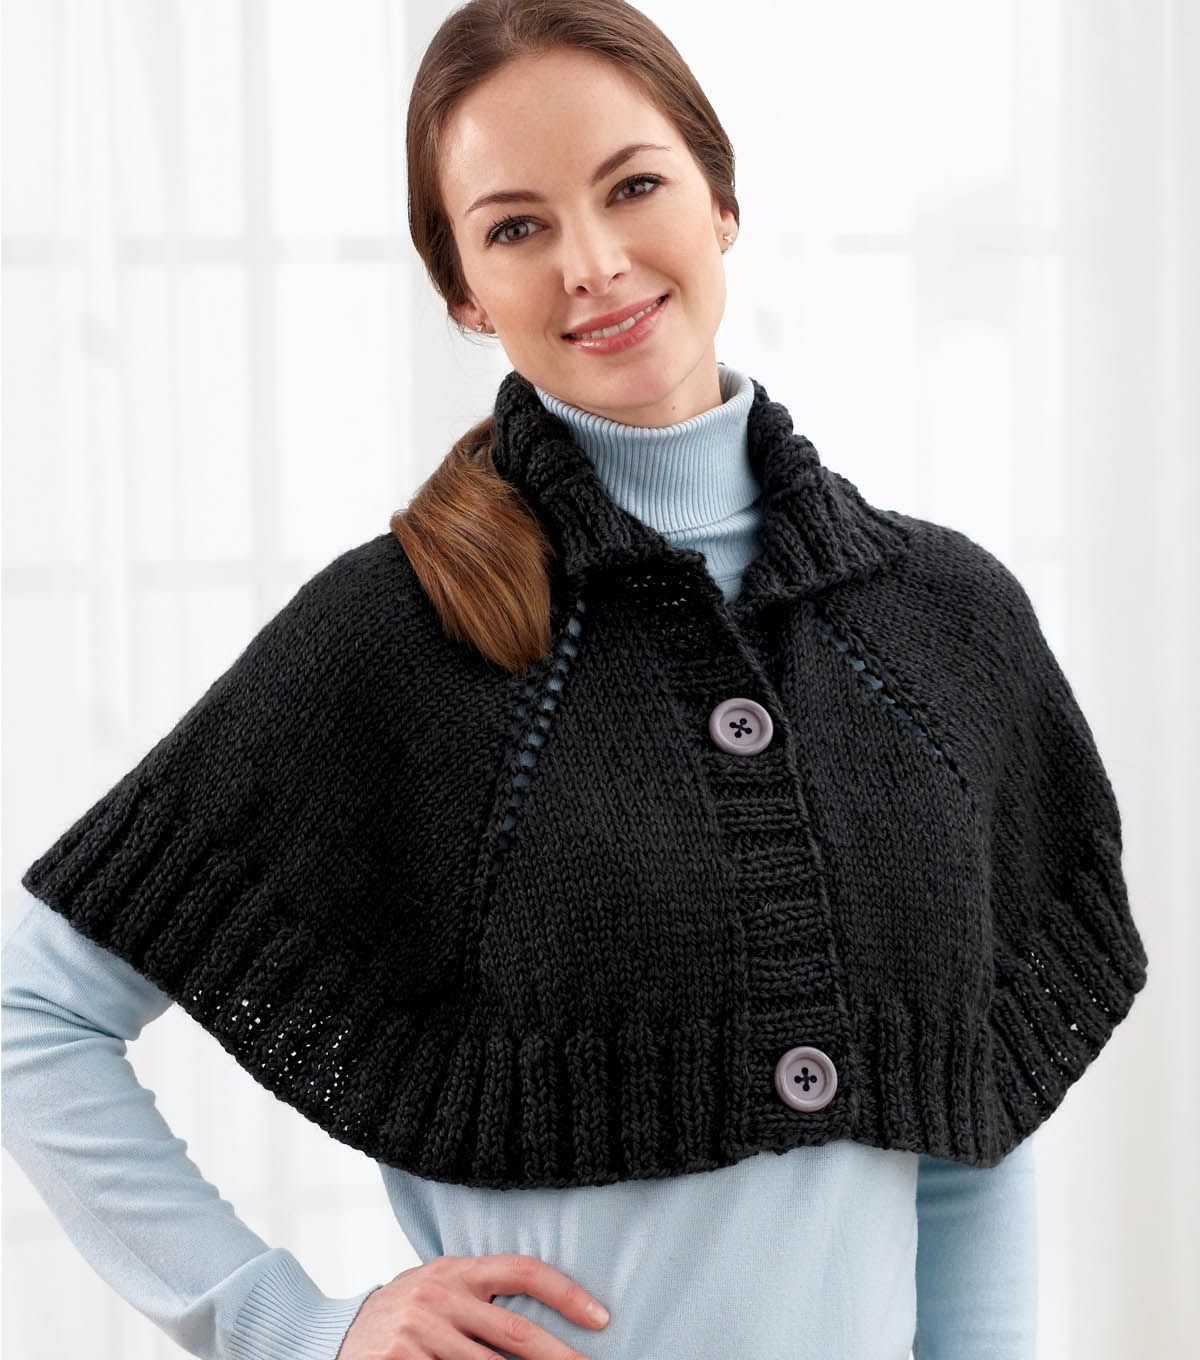 Top Down Button Front Capelet - Free Knitted Pattern - (joann ...